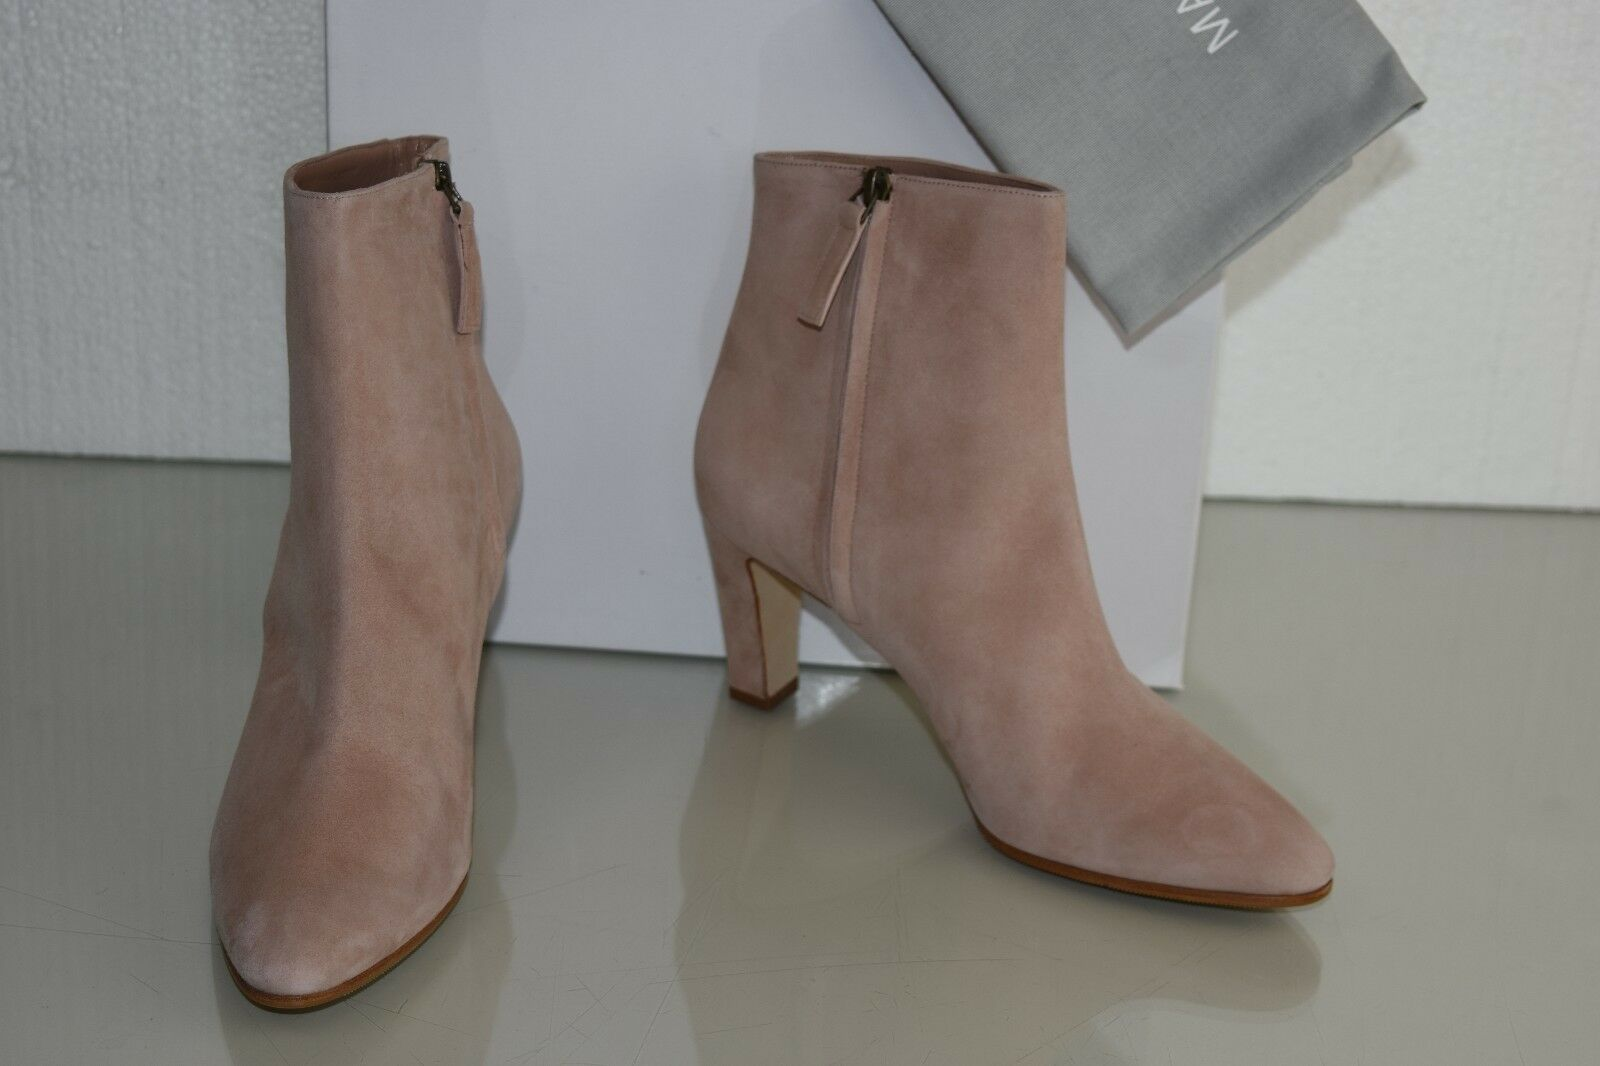 965 NEW MANOLO MANOLO MANOLO BLAHNIK INSOPO 70 ANKLE Stiefelies Stiefel BLIGE Rosa NUDE Suede 40.5 14414a